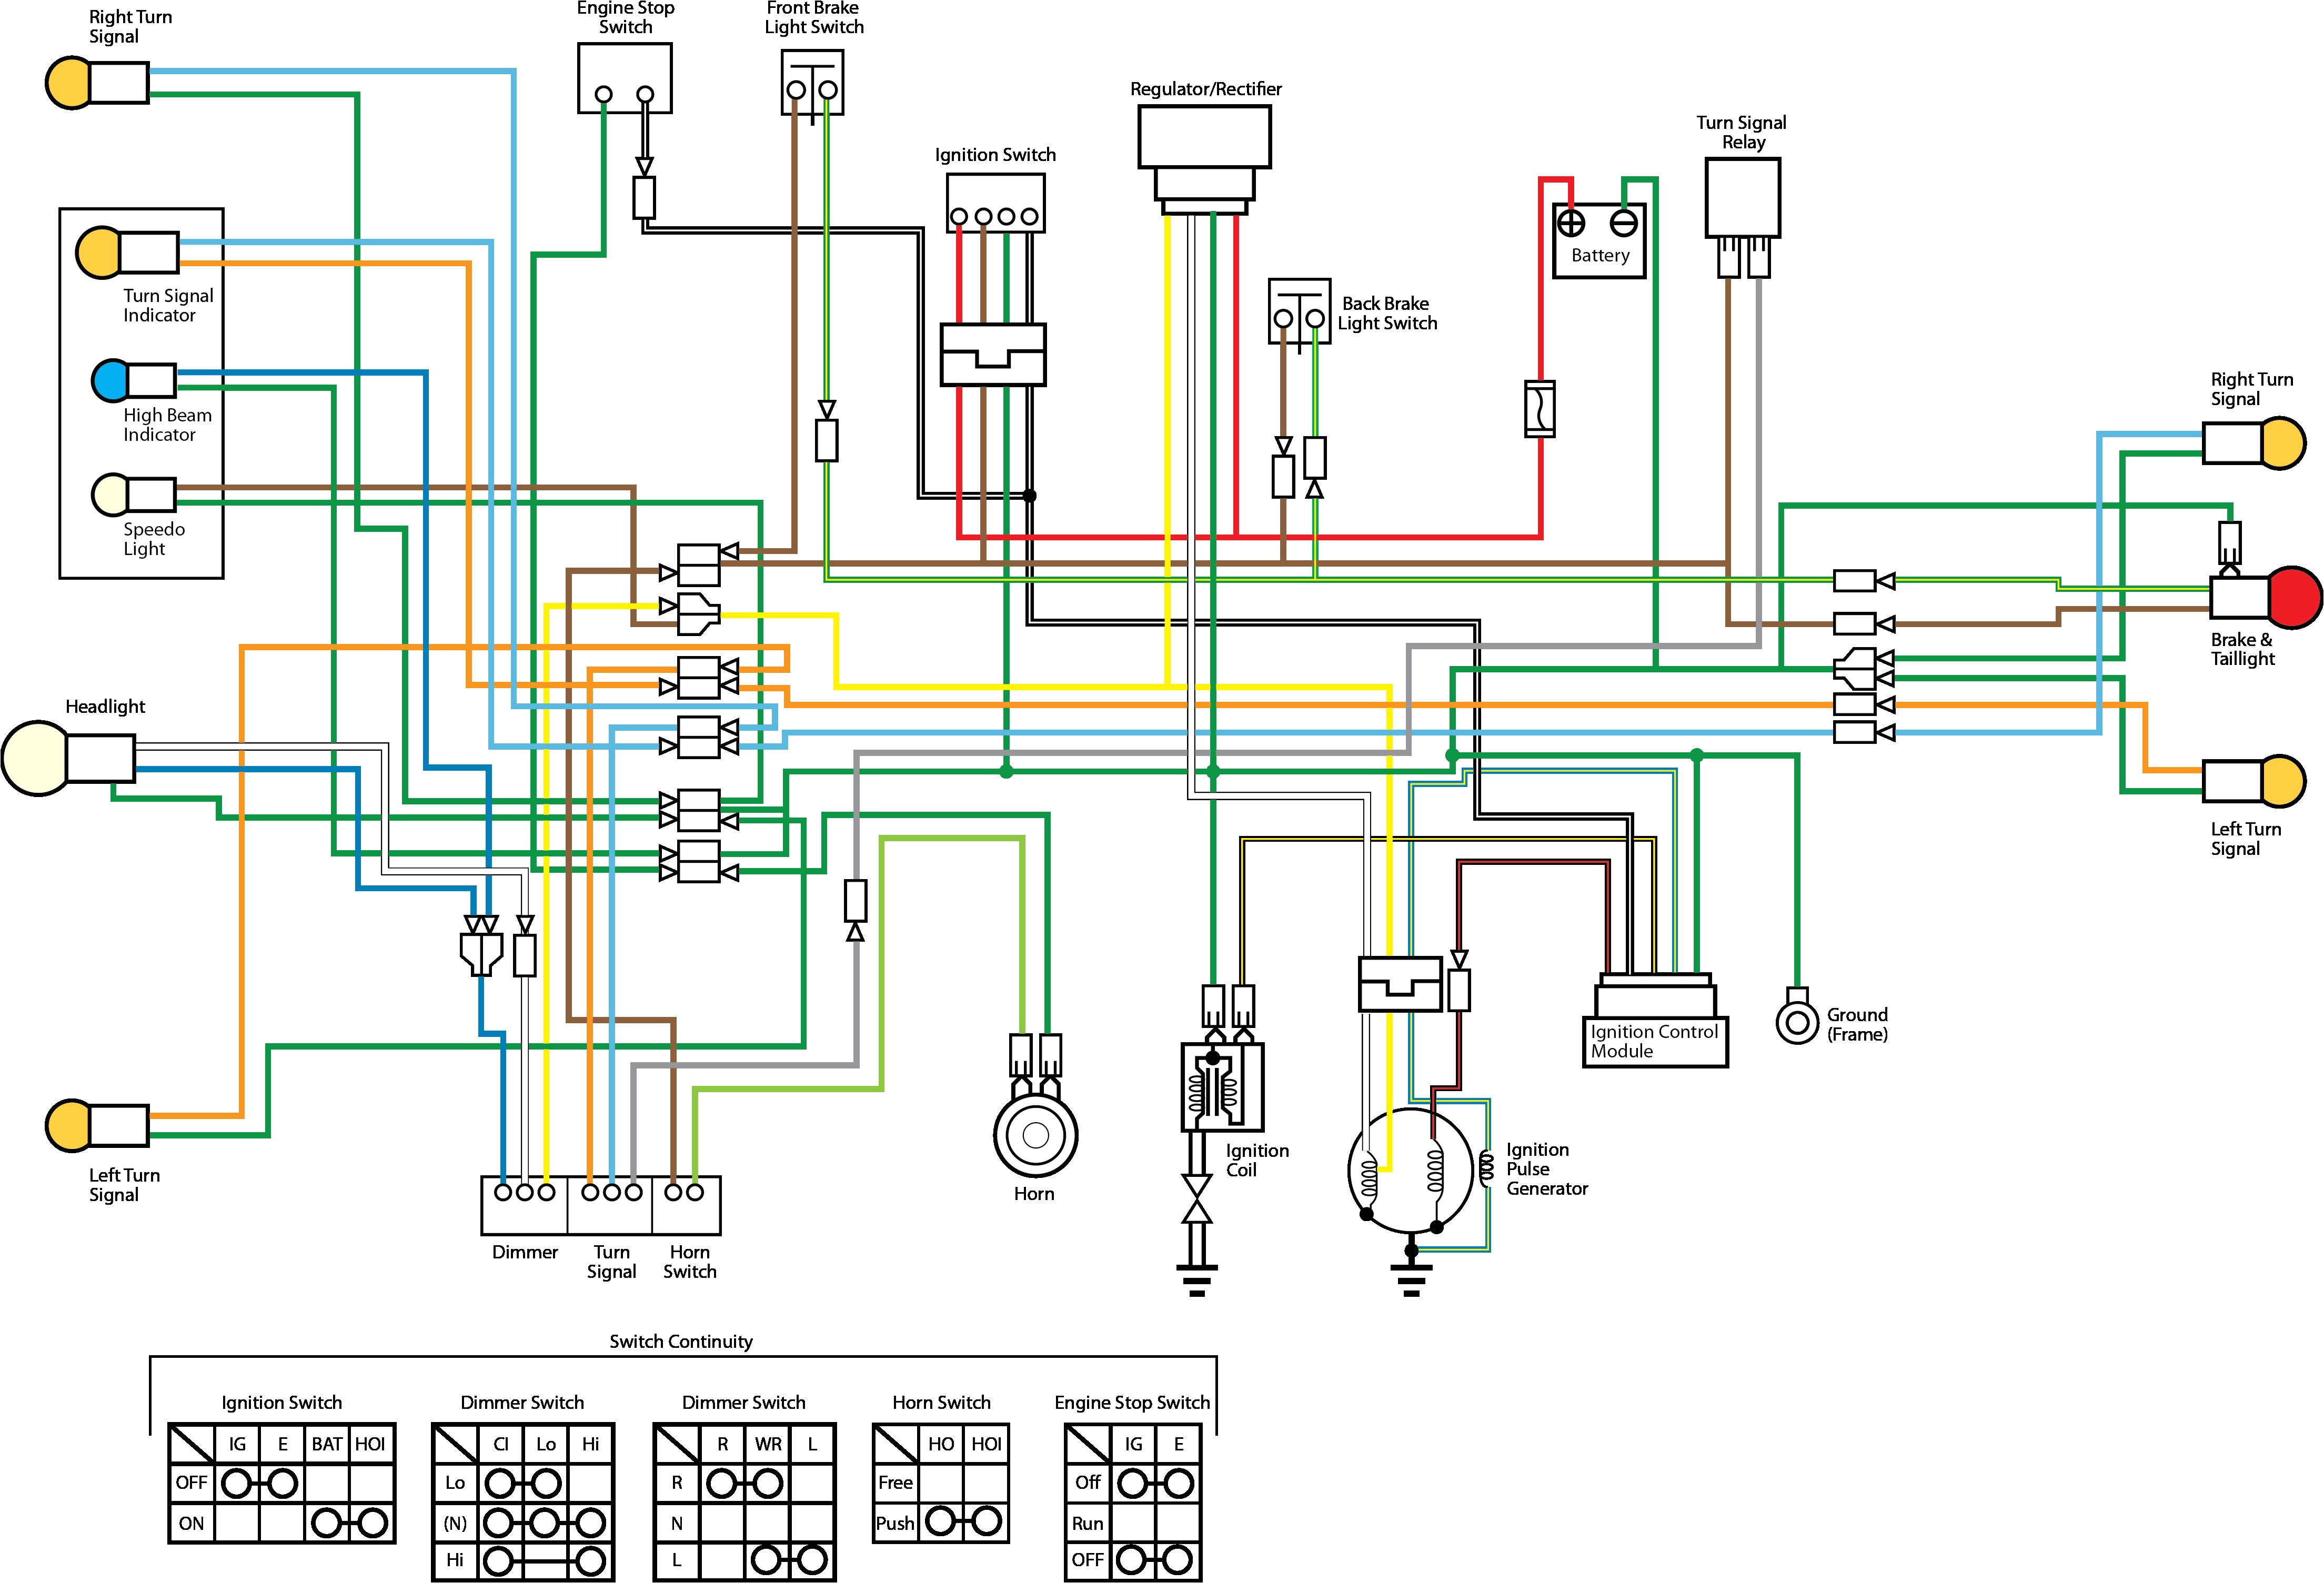 wiring diagram in addition gy6 scooter engine wiring harness diagram wiring diagram in addition gy6 scooter engine wiring harness diagram